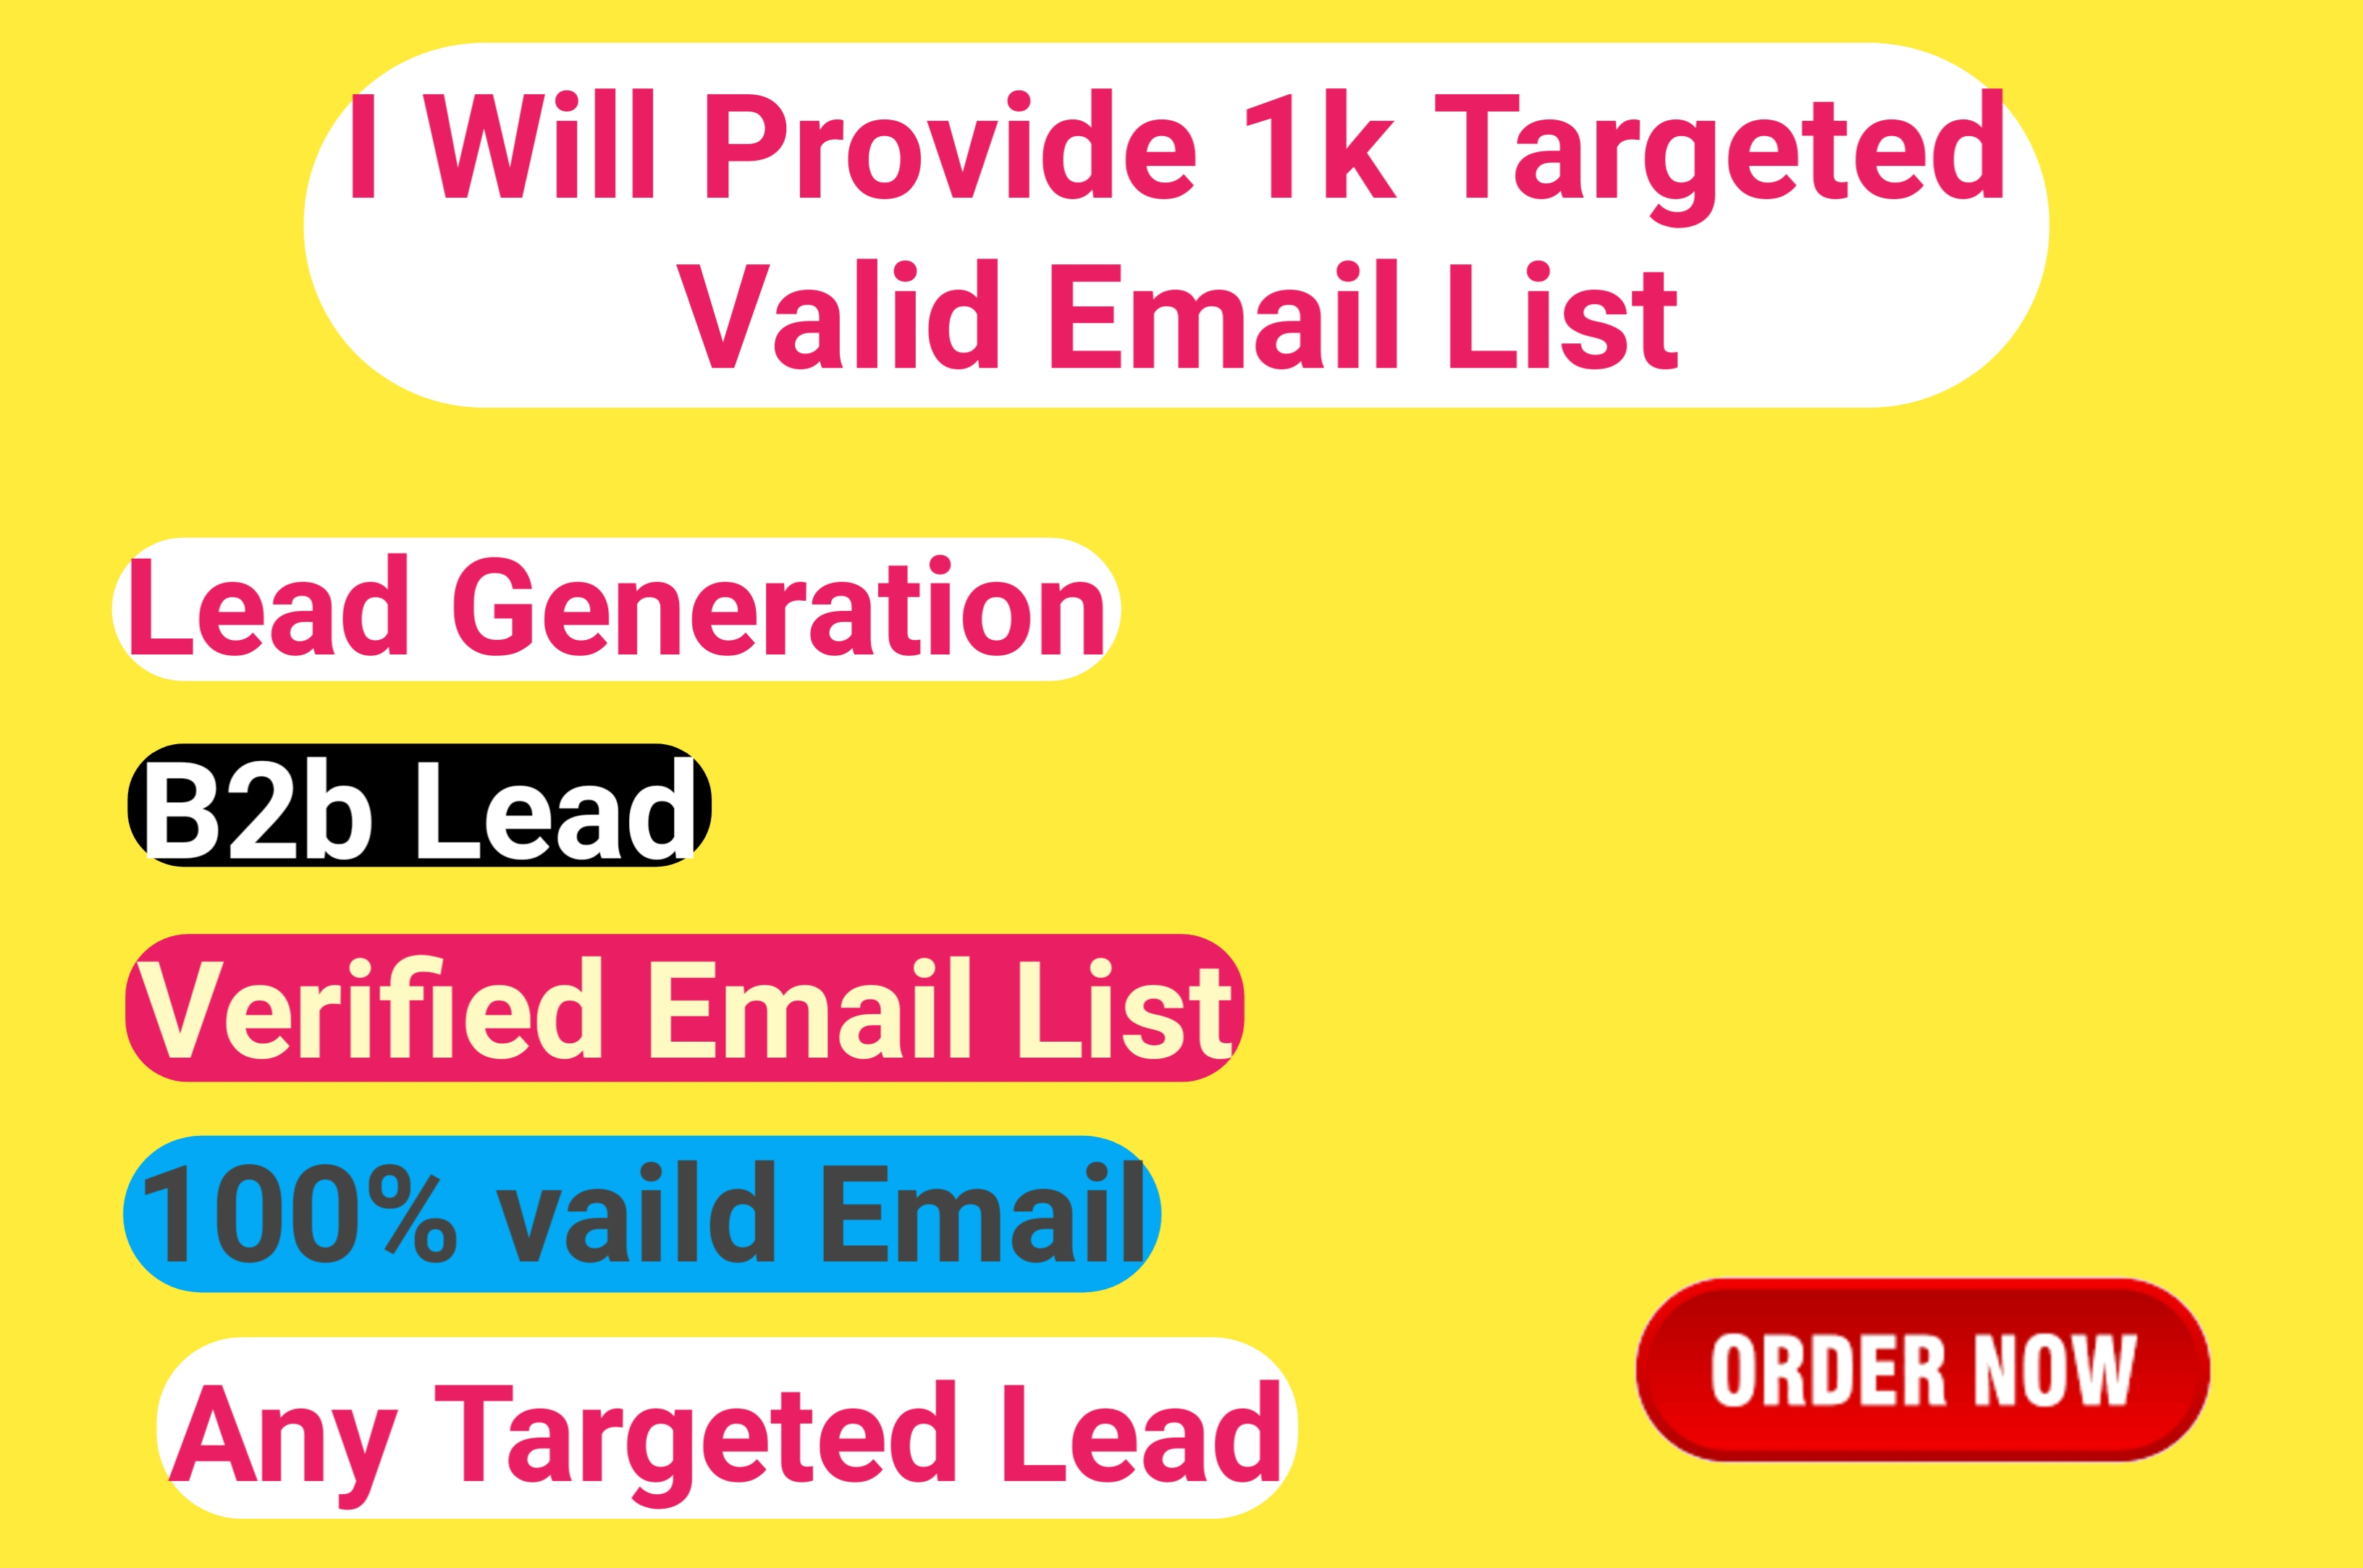 I will provide 1k targeted USA valid Email list